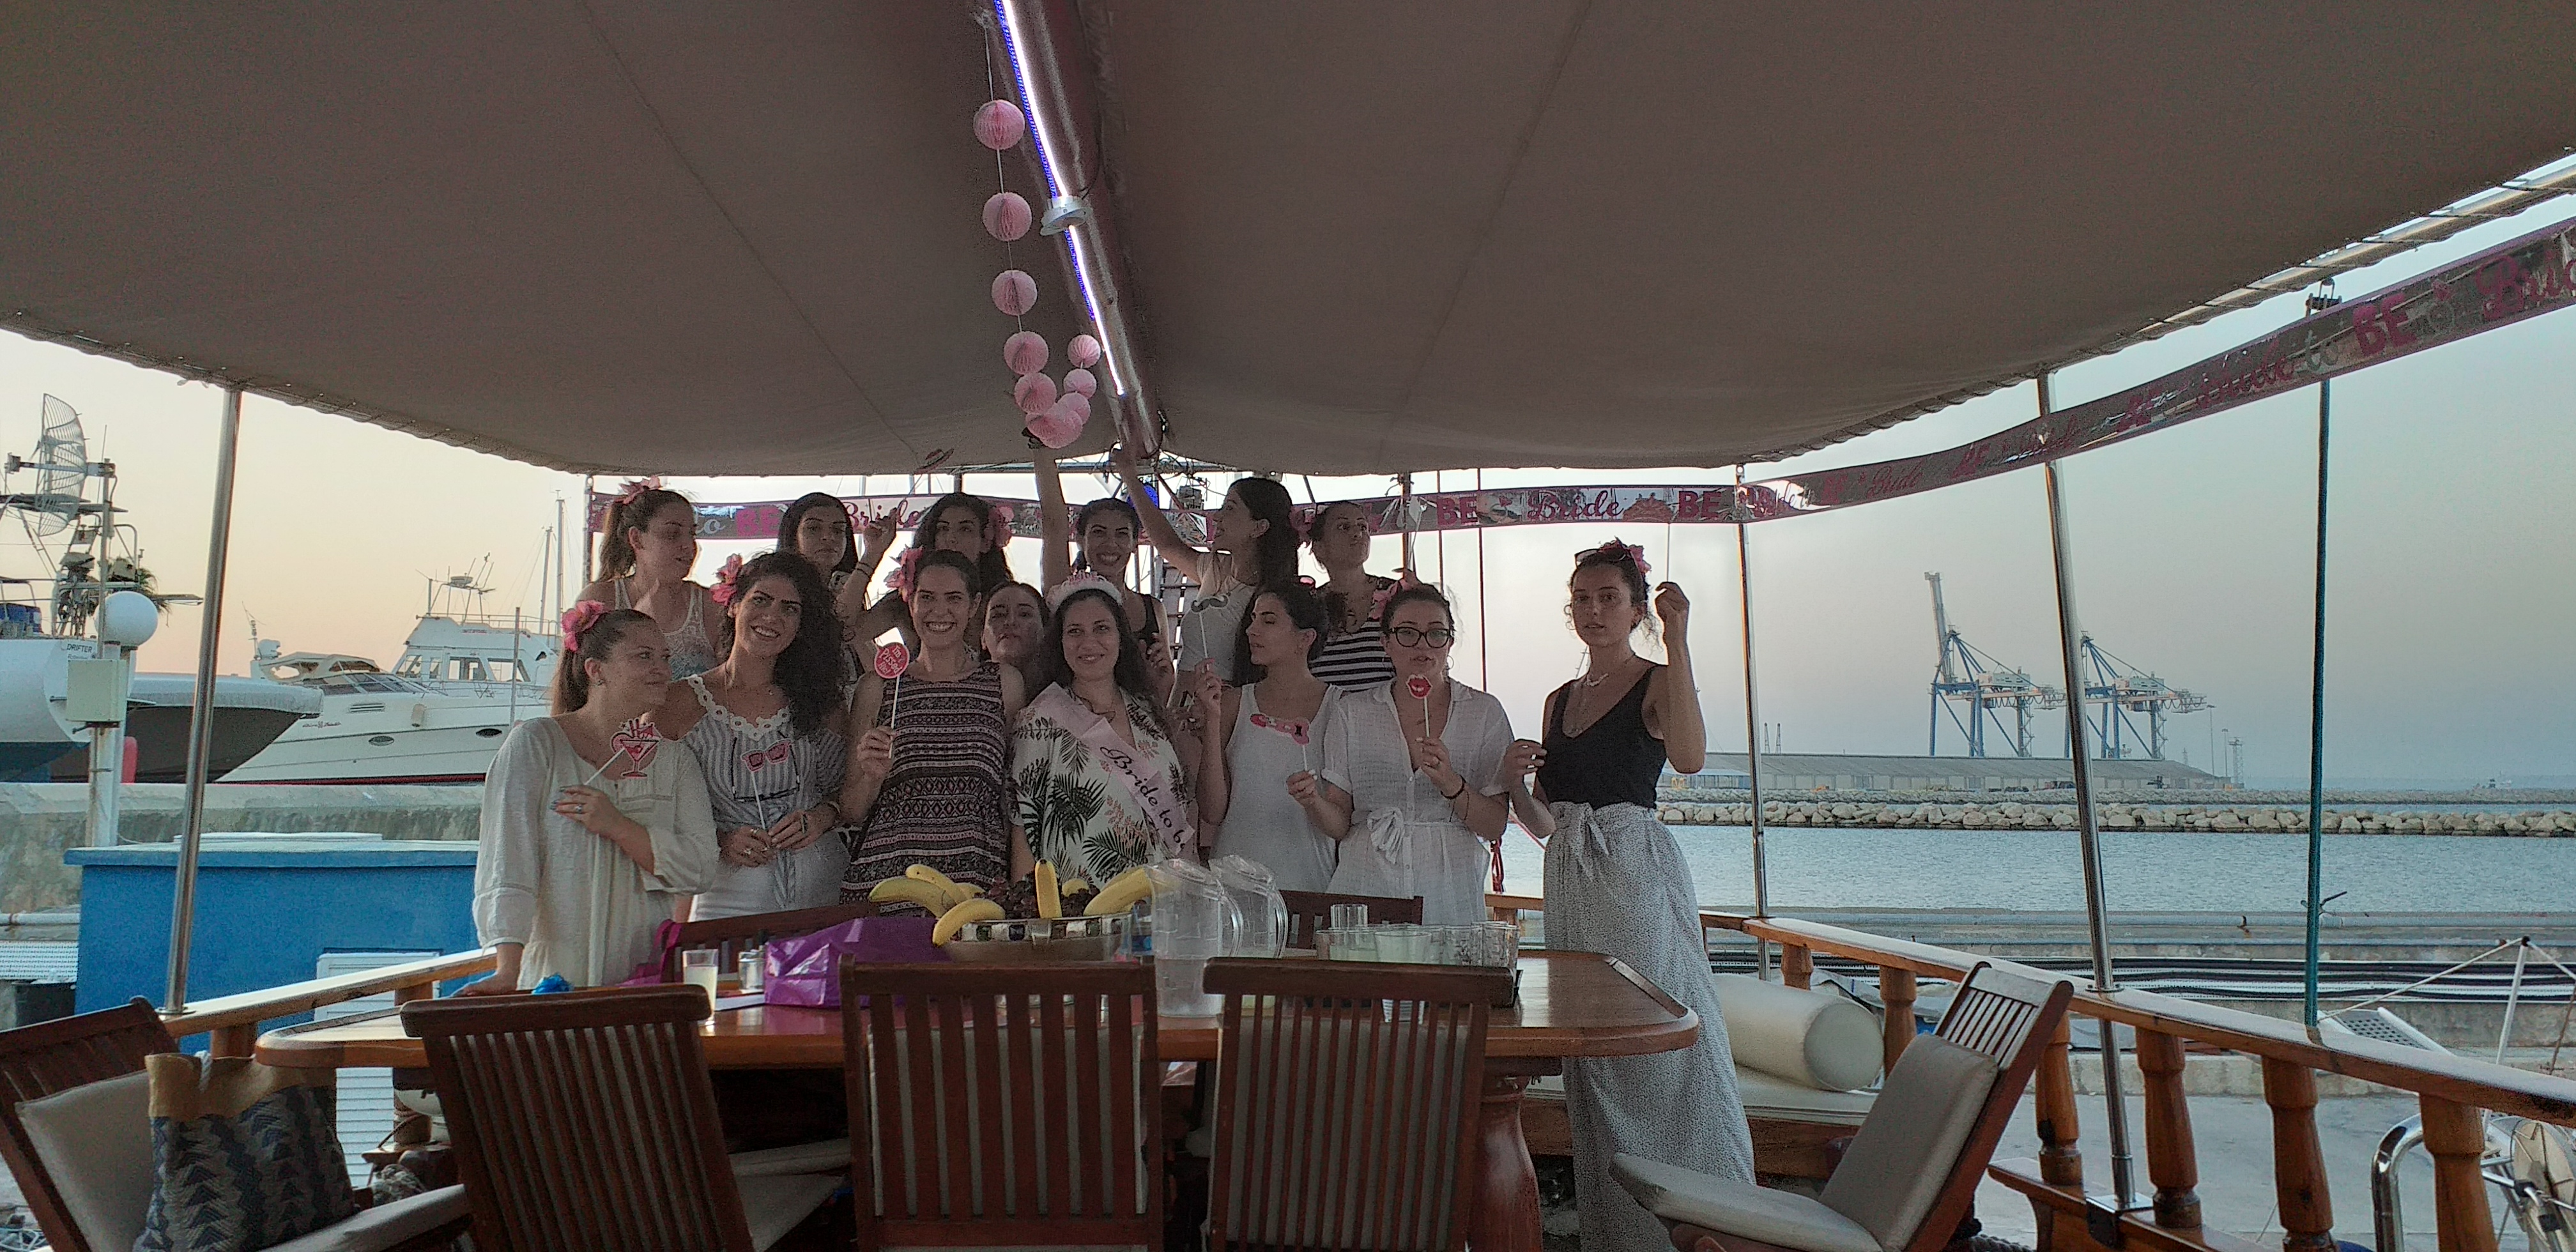 Party with friends on board